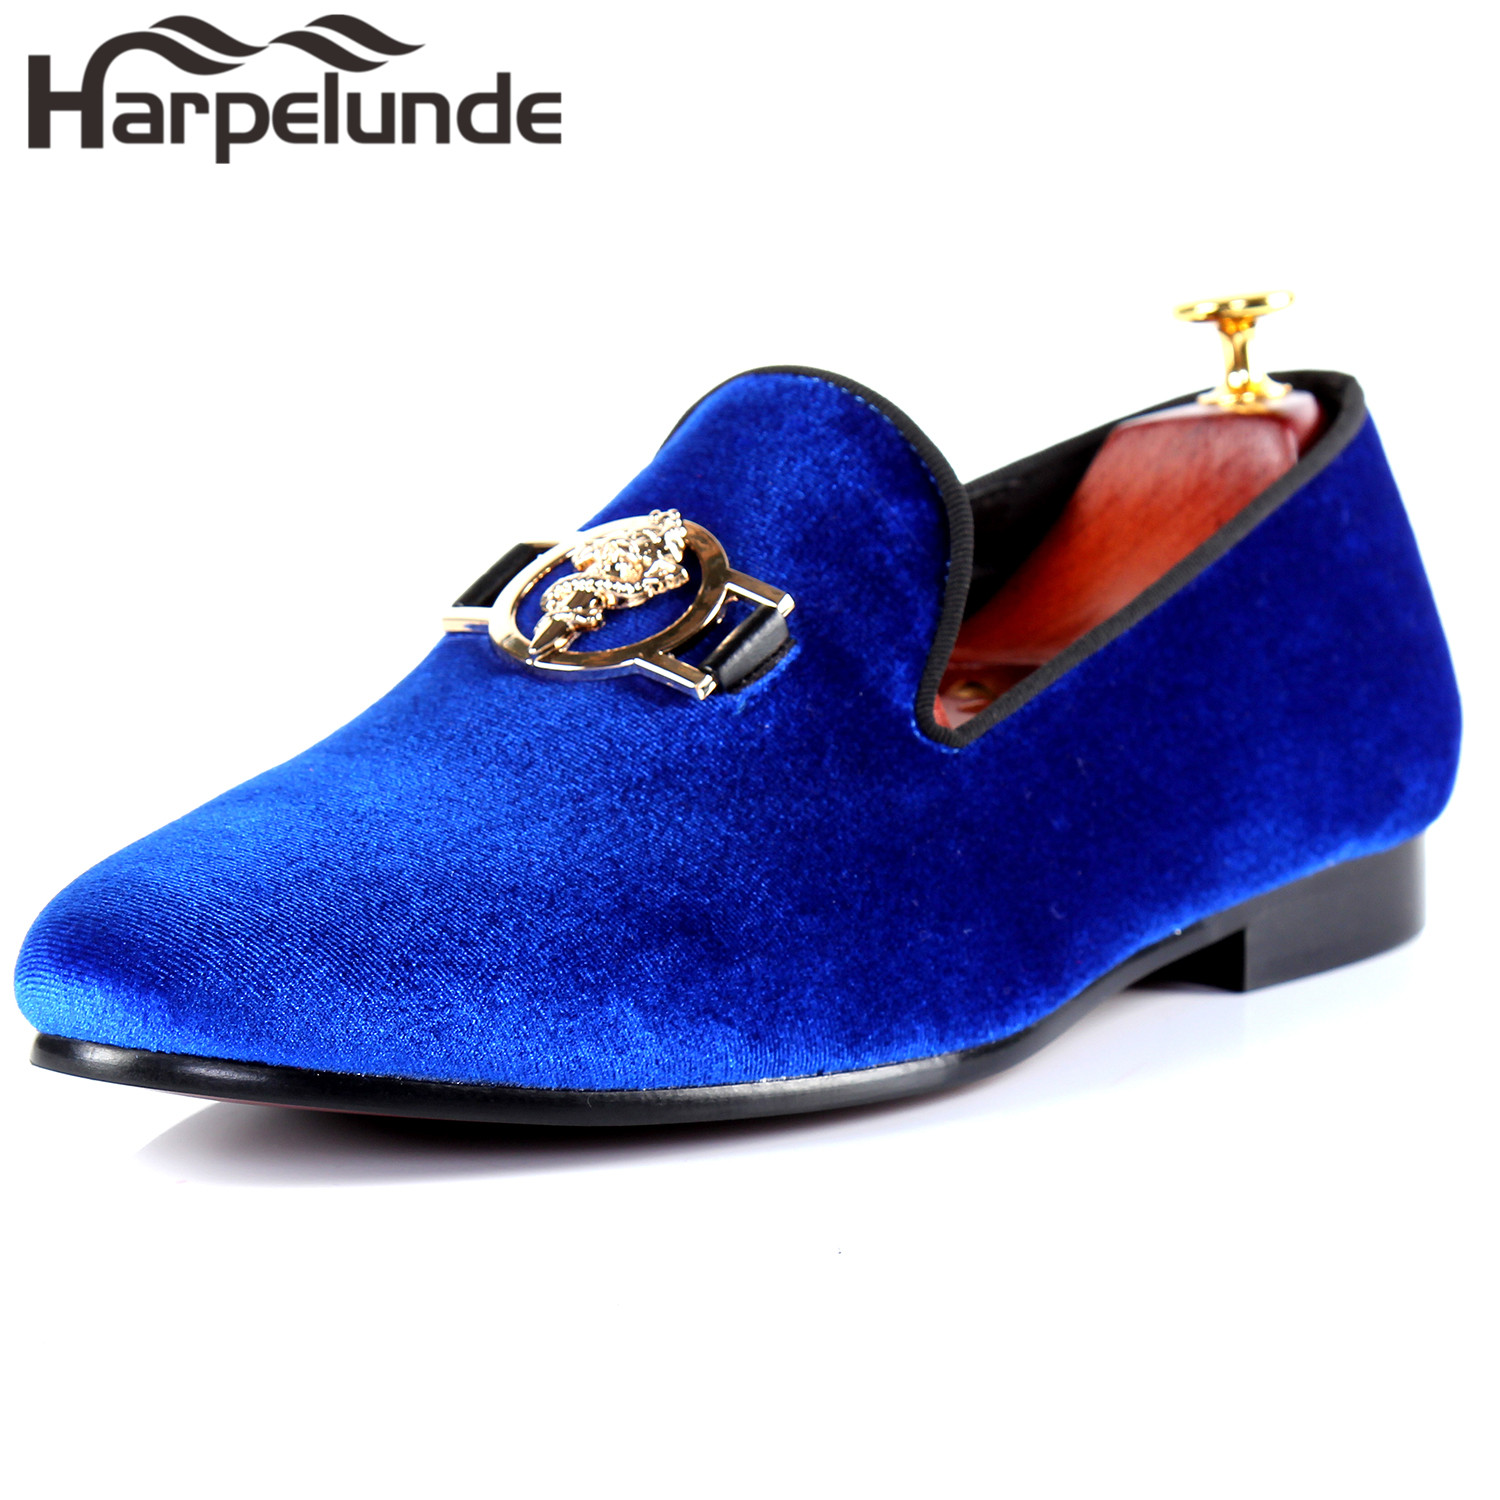 a1510832d4431 Harpelunde Gold Dragon Sword Men Party Shoes Buckle Strap Dress Shoes Top  Sell Blue Velvet Loafers